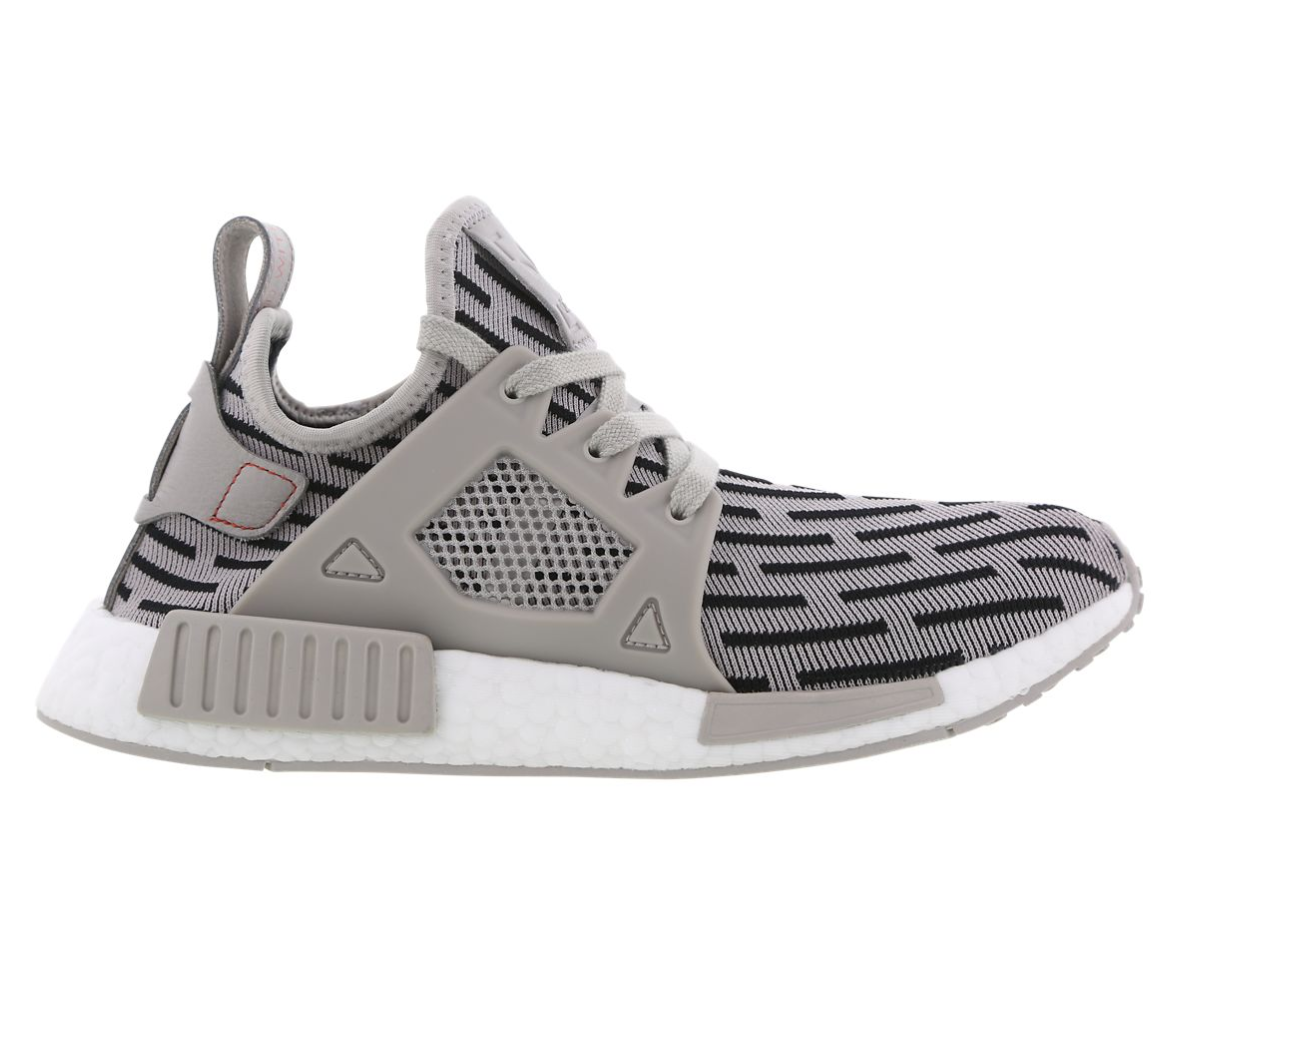 ADIDAS Tubular Viral Chalk fonctionnement chaussures Sneakers